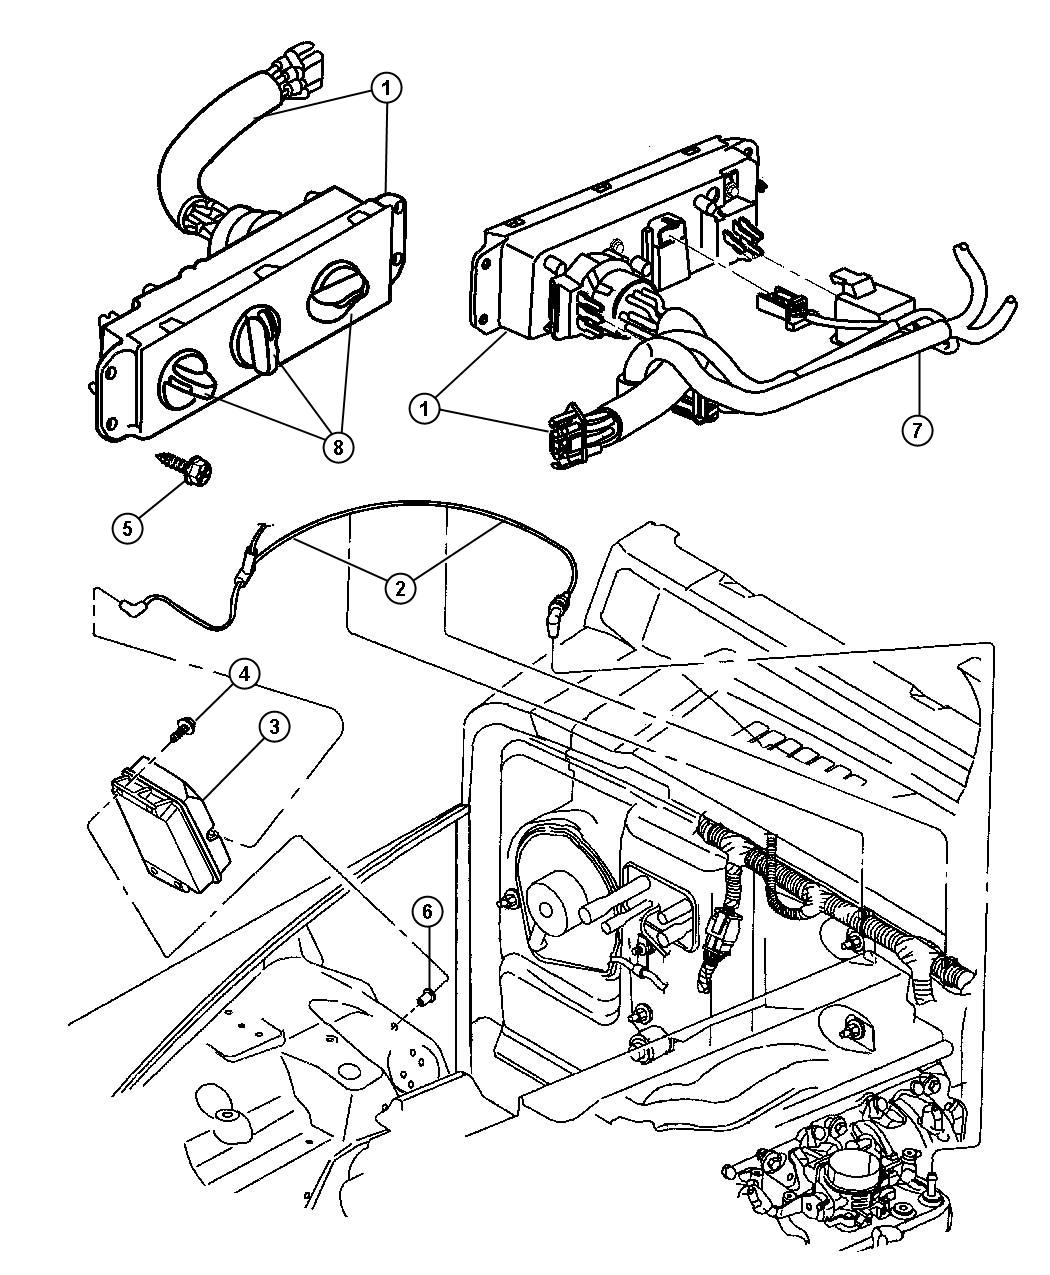 Jeep Wrangler Control Used For A C And Heater All